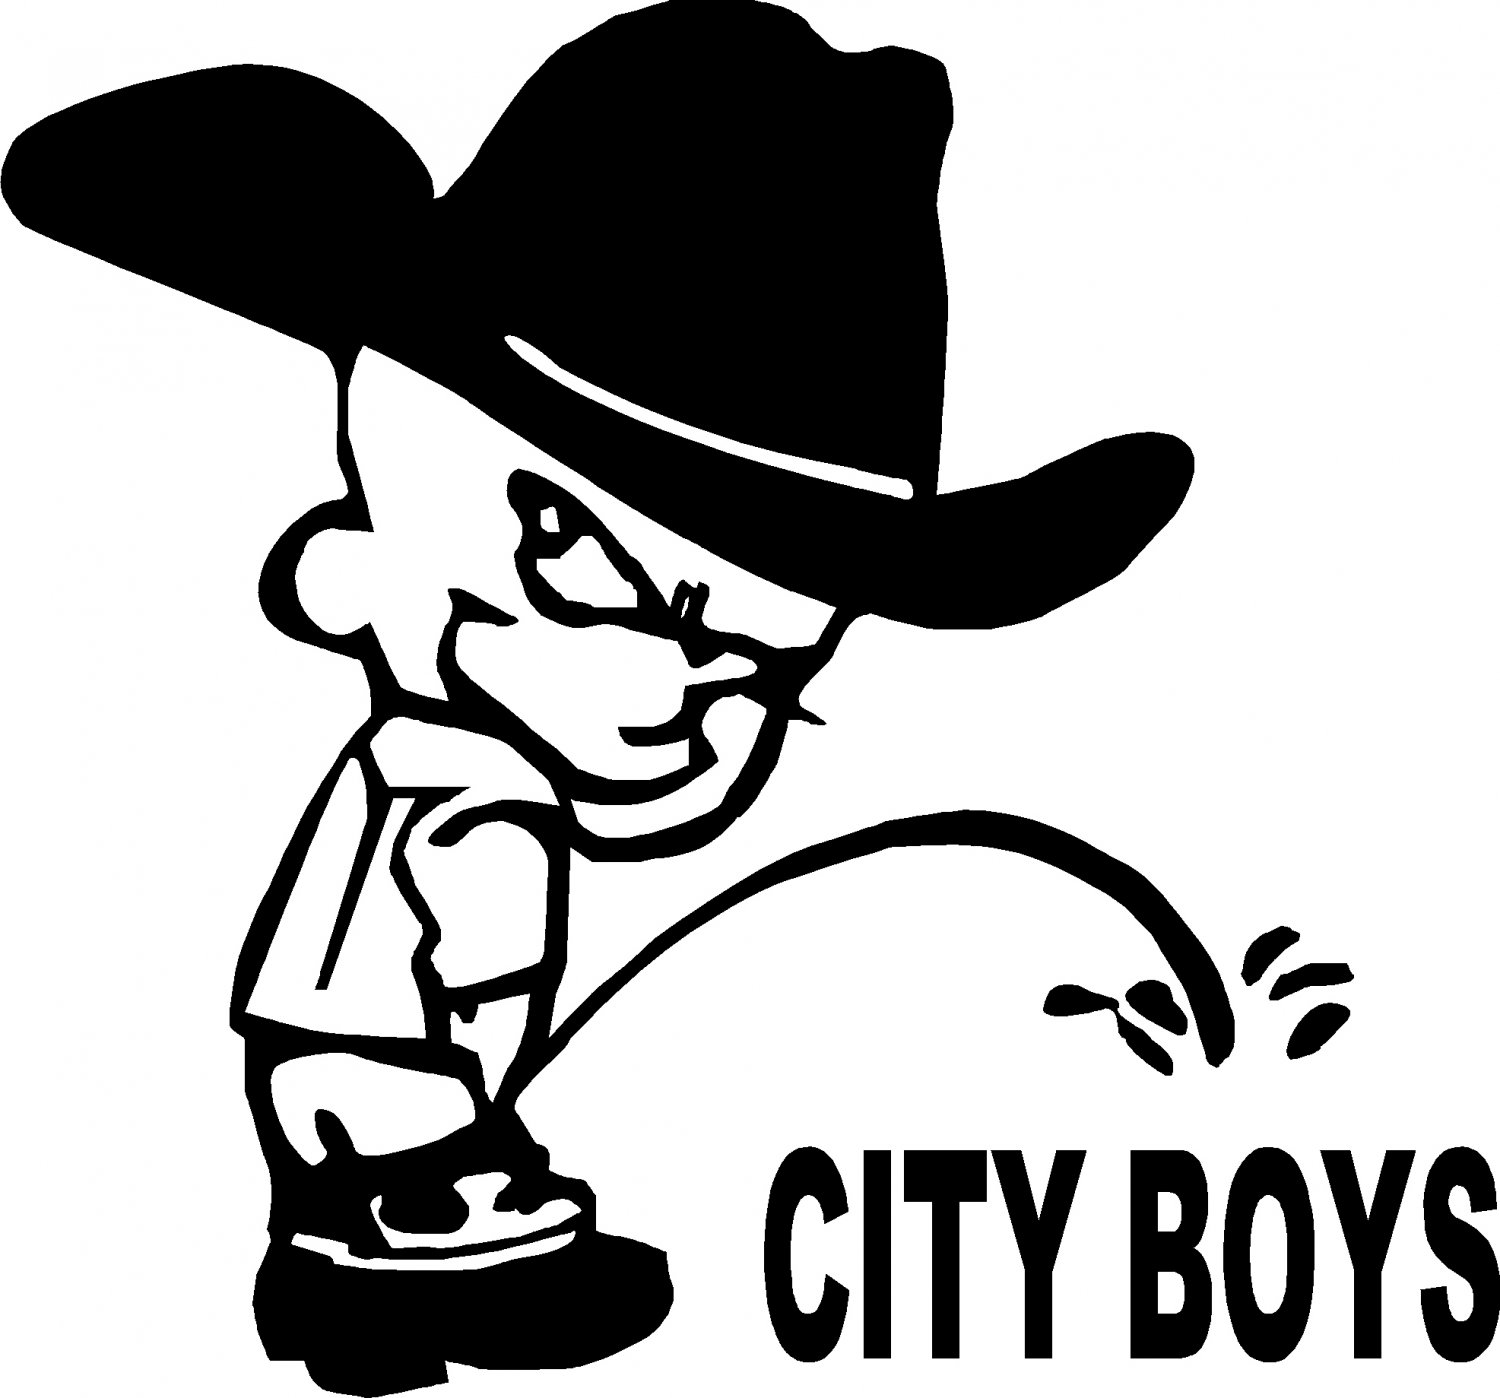 COUNTRY BOY PEE ON CITY BOYS  Wide VINYL DECAL STICKER - Country boy decals for trucks